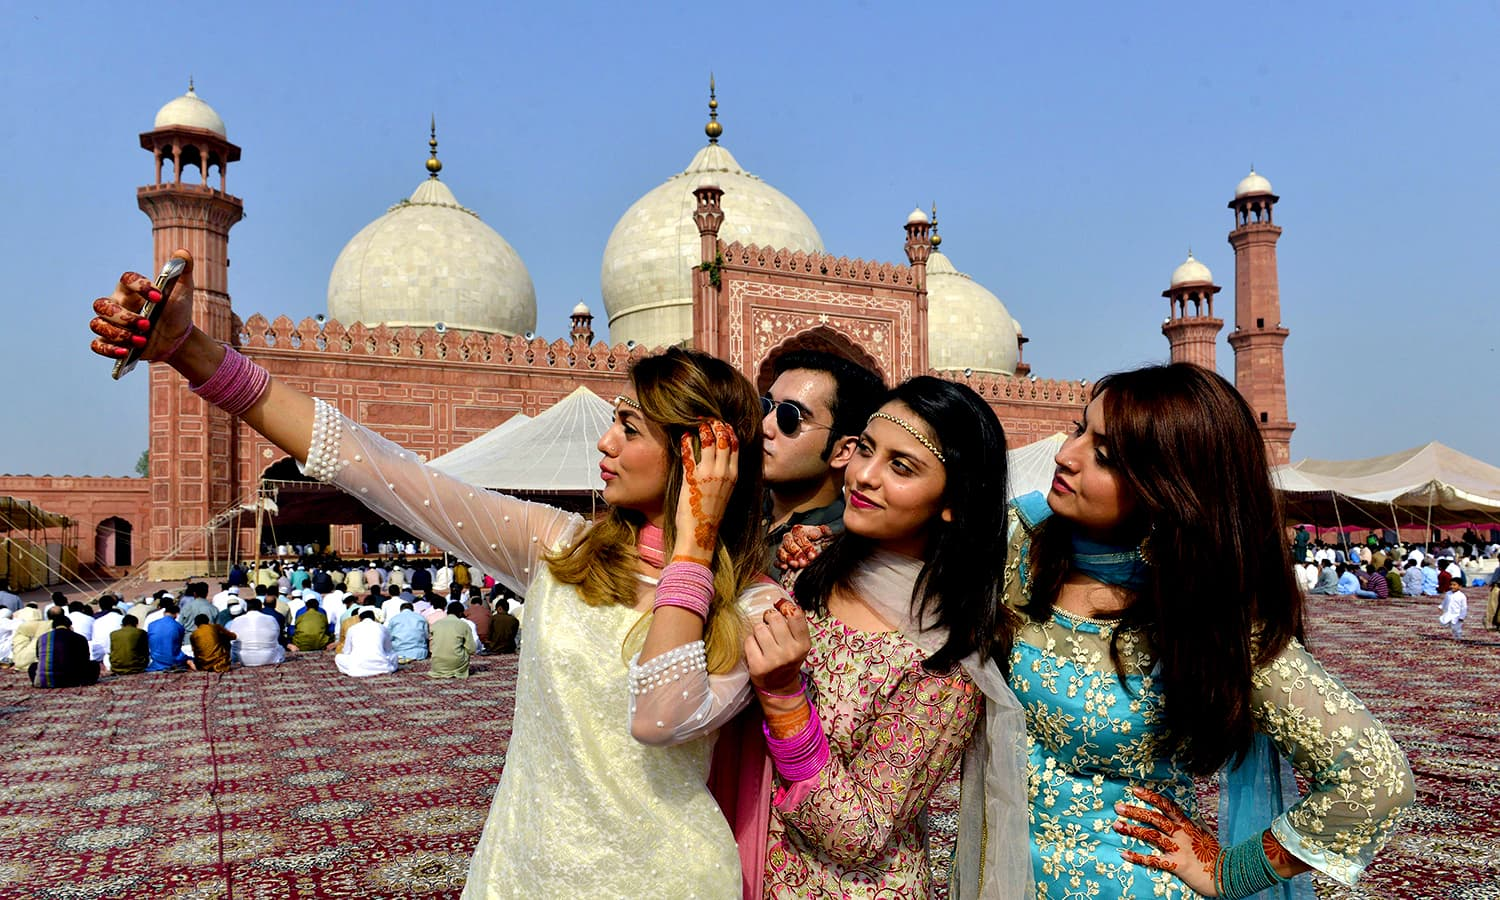 Women pose for selfie after attending Eidul Azha prayers in Lahore on September 13, 2016.PHOTO: AFP